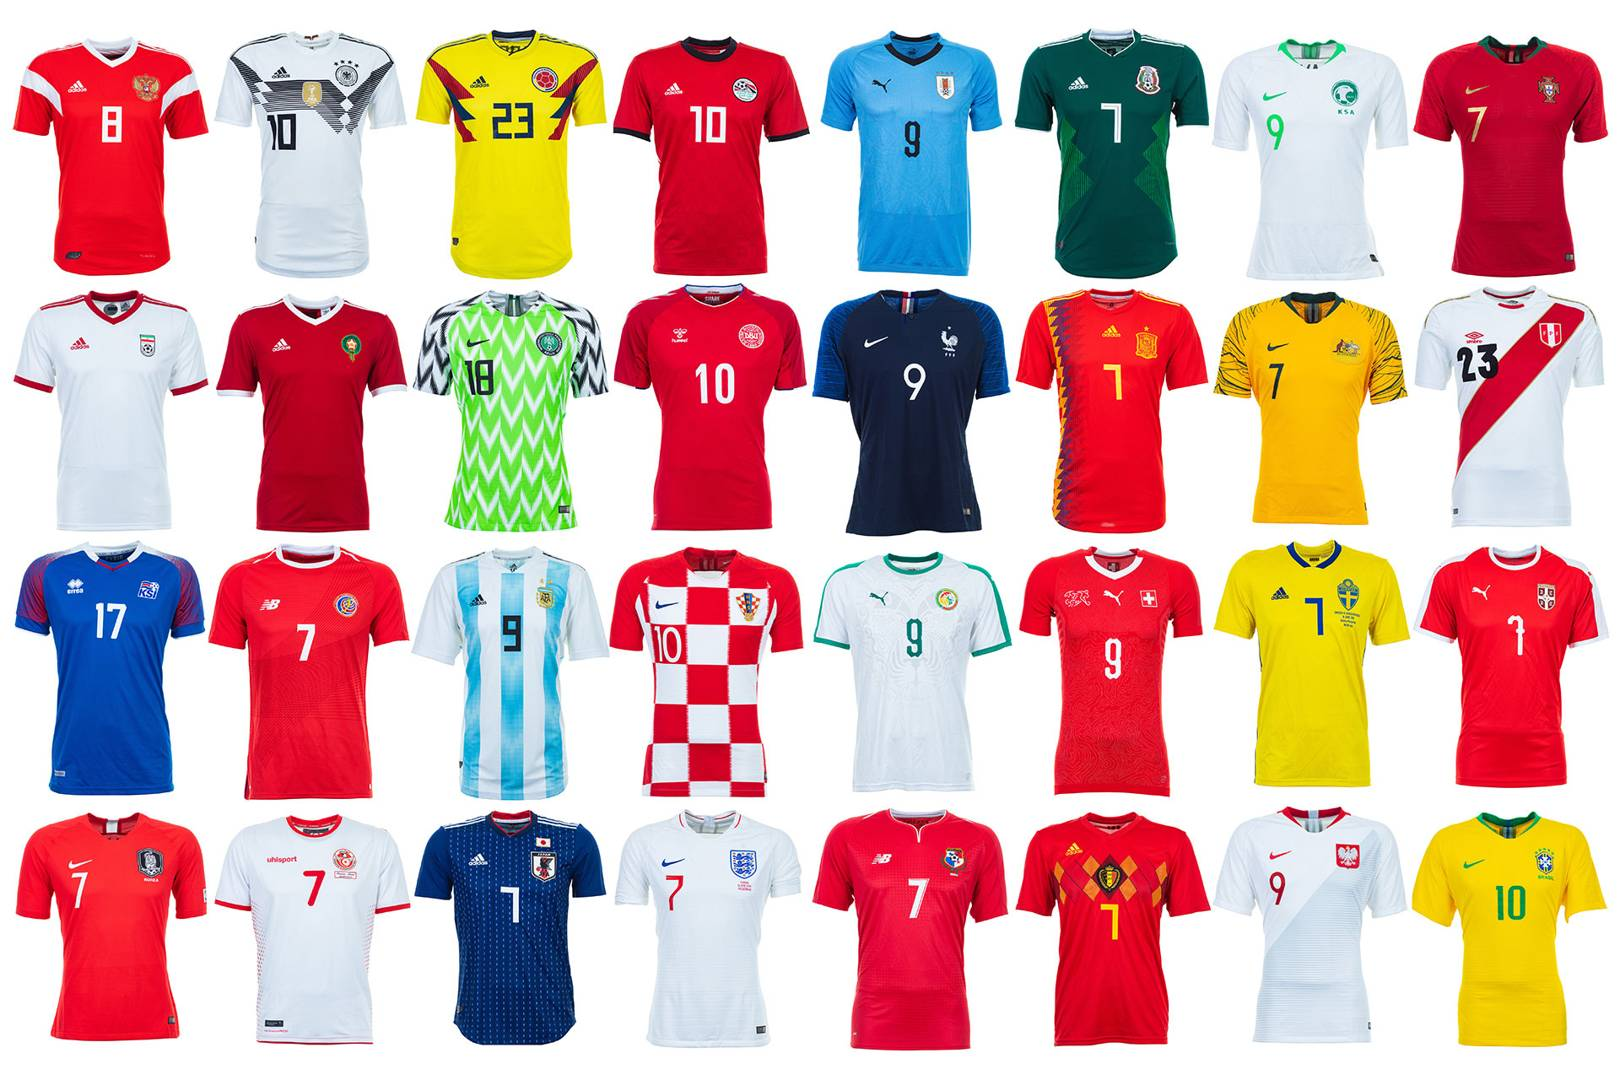 a8d92c938 World Cup 2018 kits ranked: from worst to best | British GQ